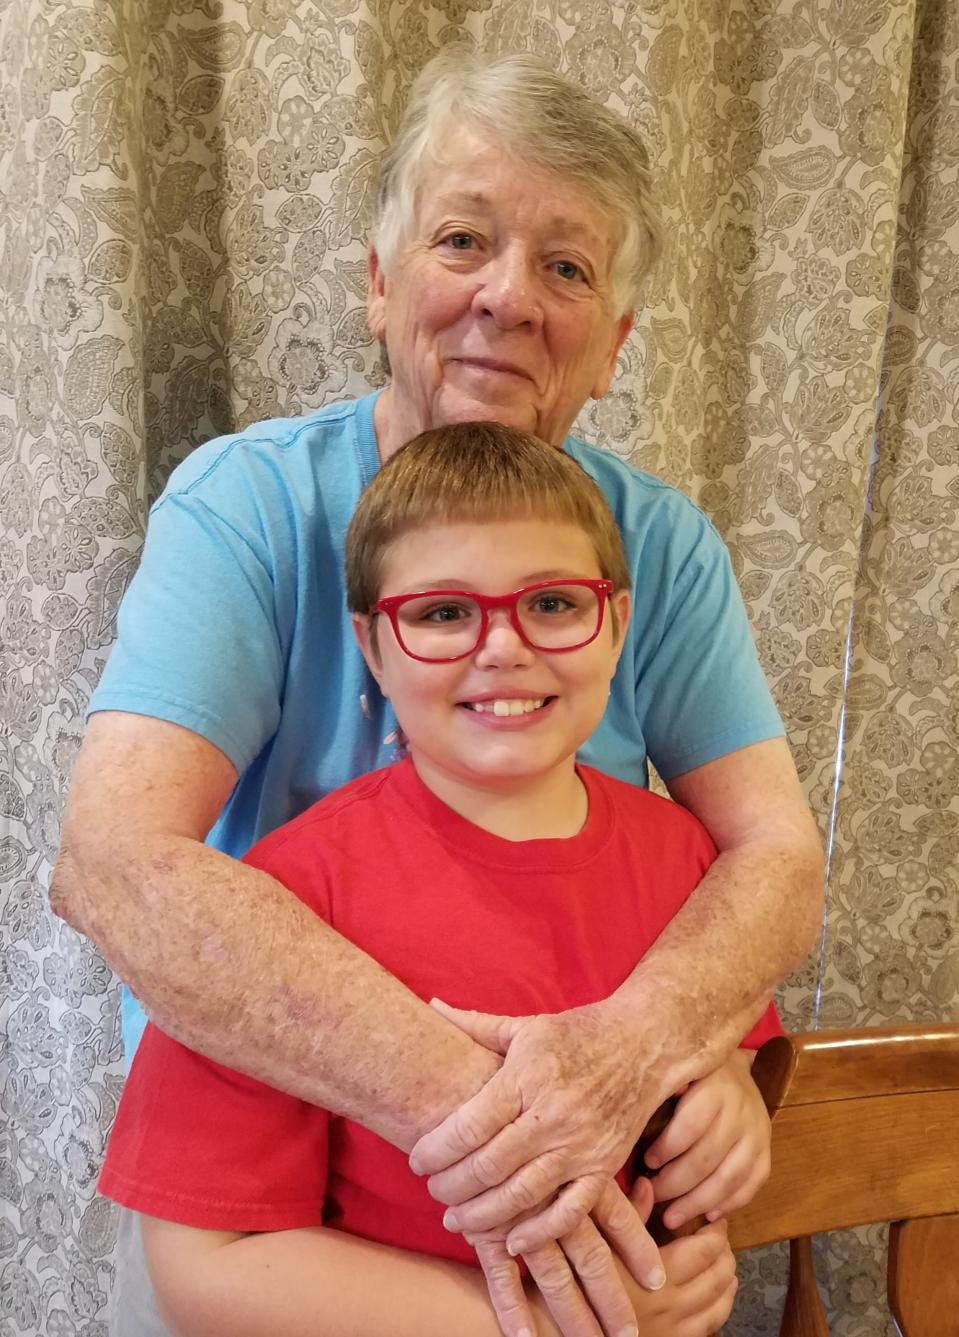 This image released by Renee Fry shows Pat Fry posing with her grandson Liam Fry Hawker. Liam's mother, Renee Fry, CEO and co-founder of an online estate planning business, moved in with her parents just outside State College, Pa, so Pat, a retired eighth-grade science teacher, could oversee Liam's online schooling. (Renee Fry via AP)